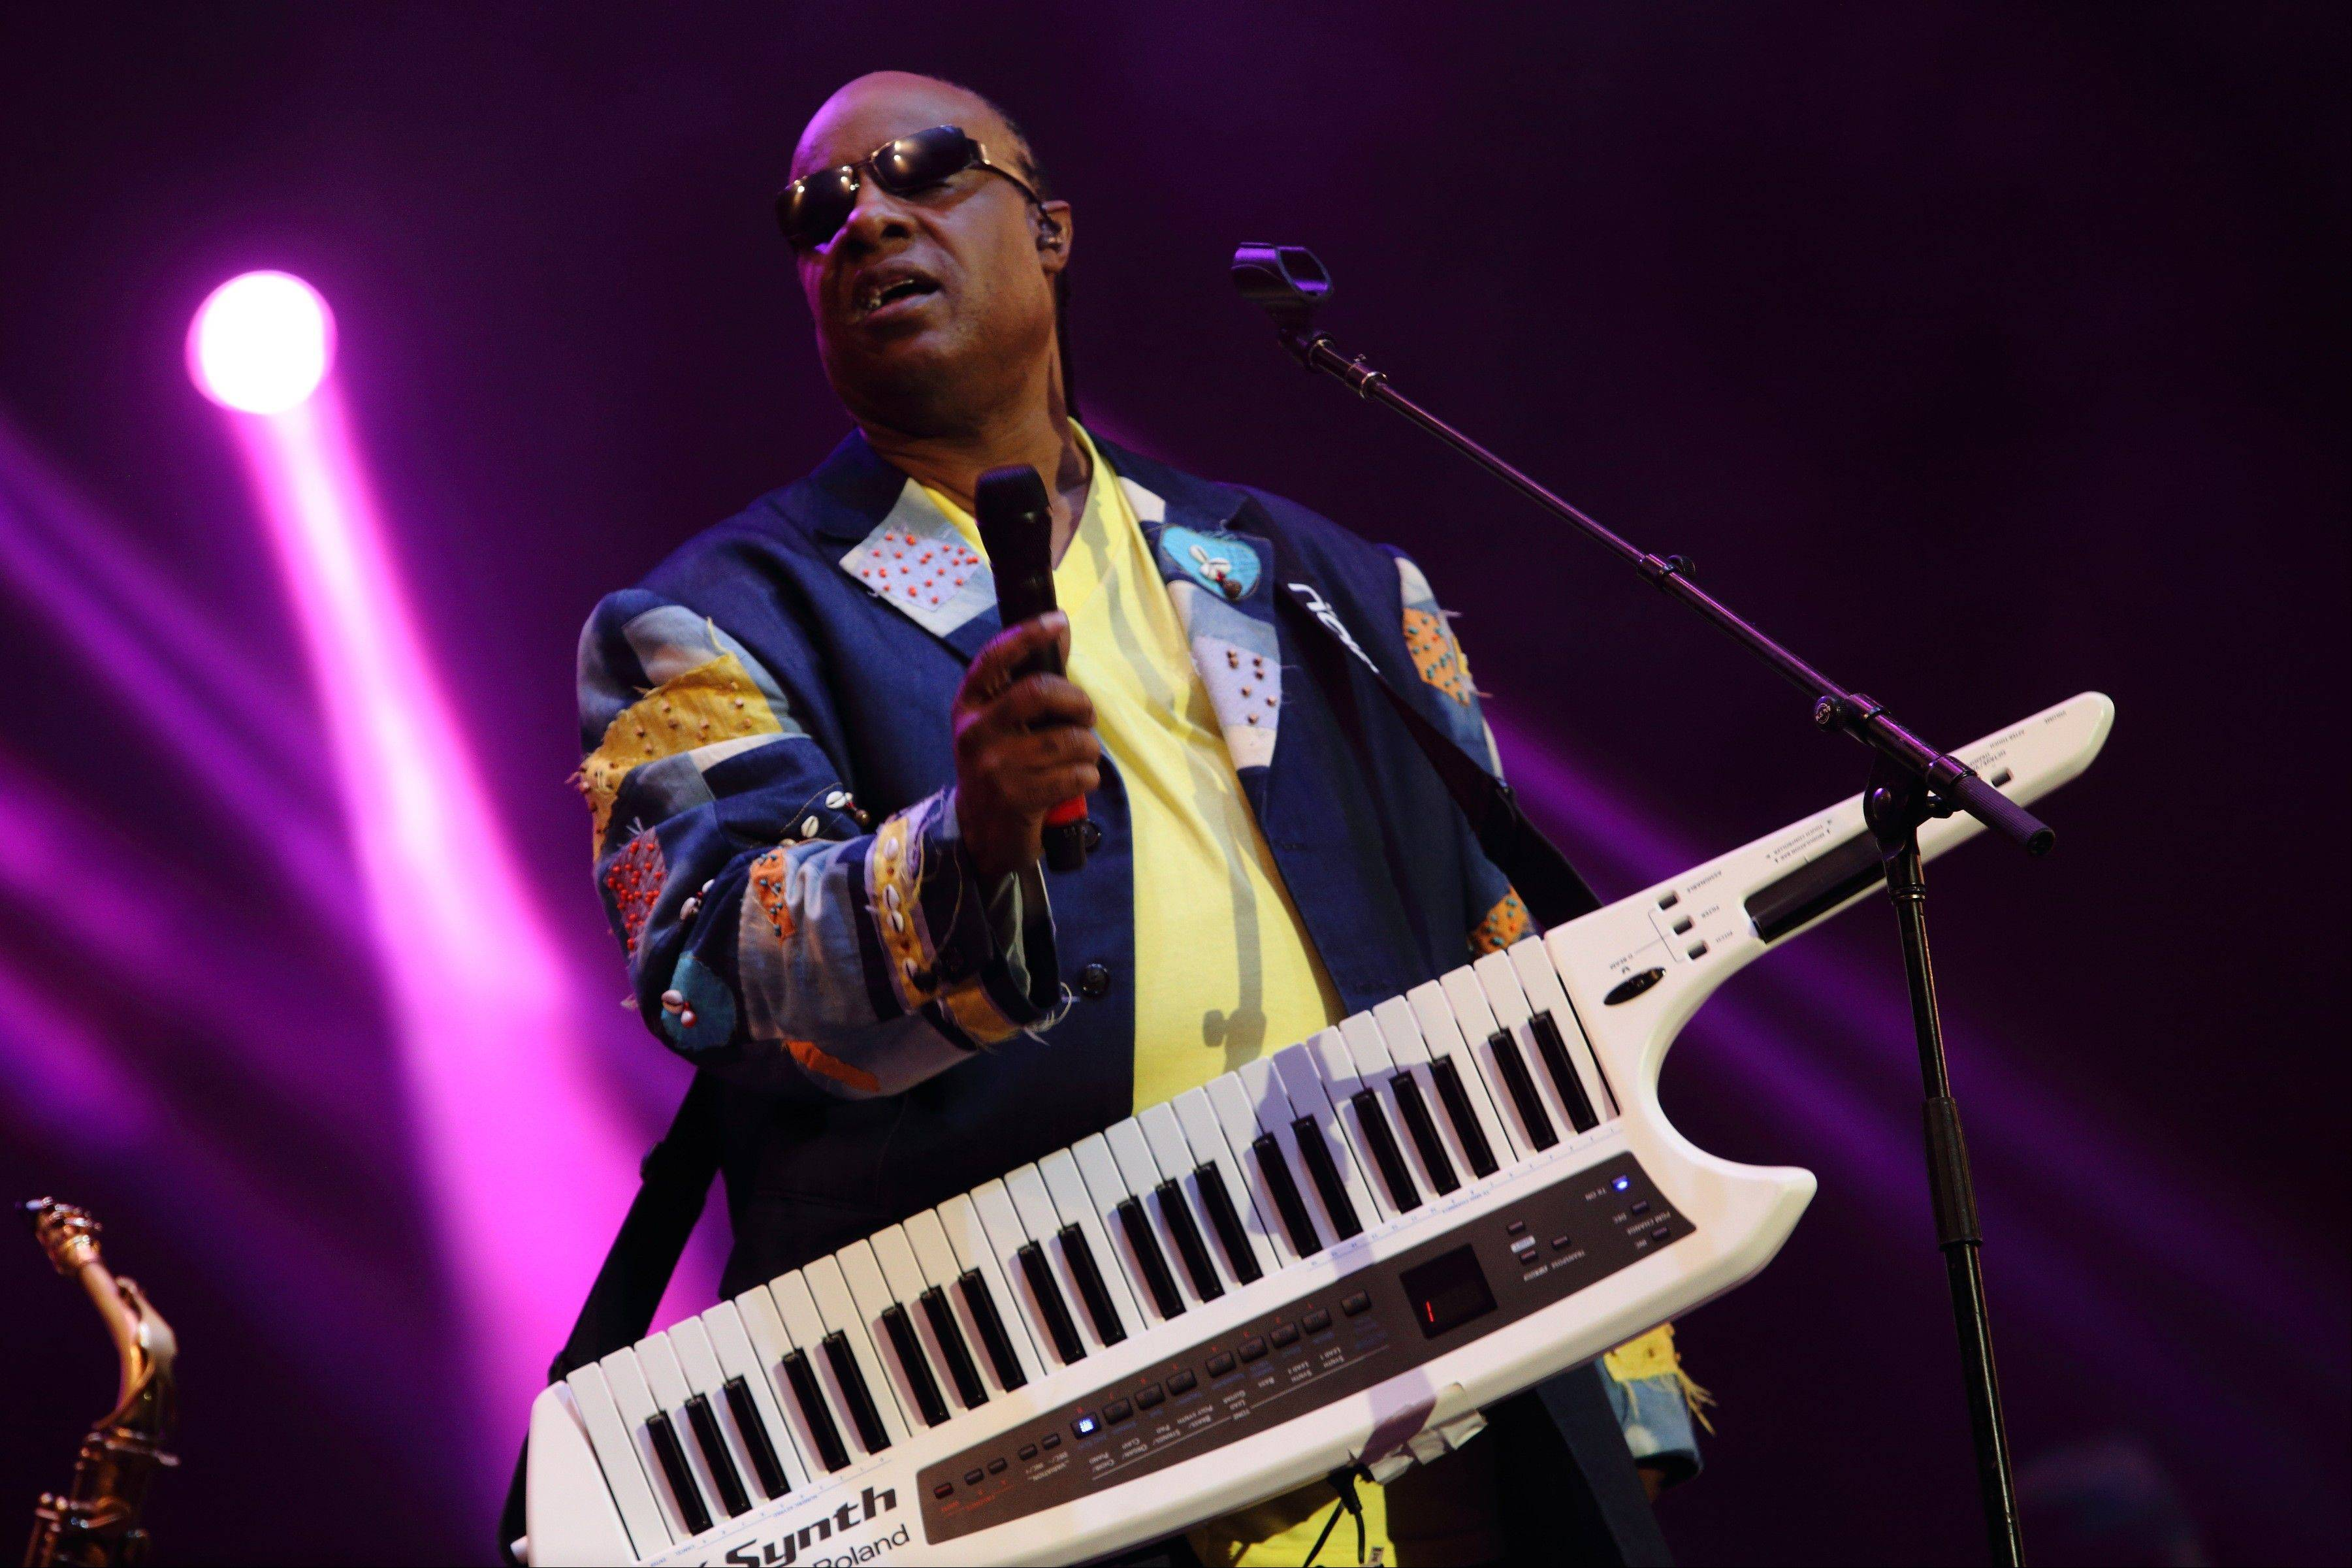 Stevie Wonder will participate in the second Global Citizen Festival on Sept. 28, 2013, in New York's Central Park with Kings of Leon, John Mayer and Alicia Keys.